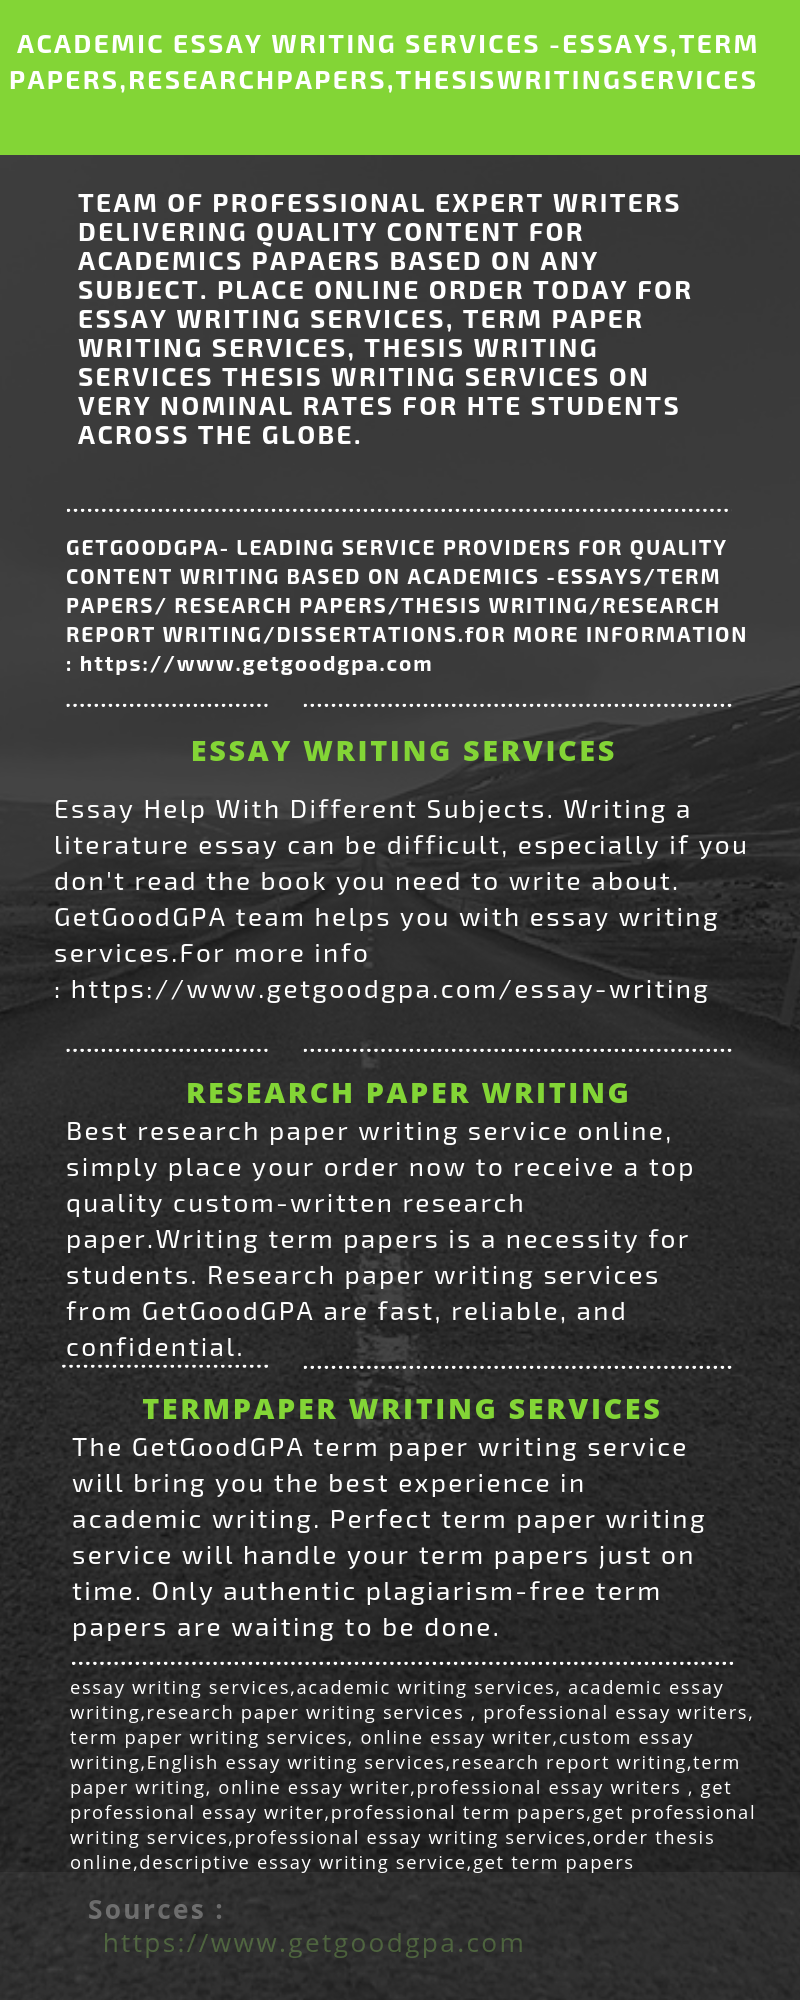 best term paper writers services online